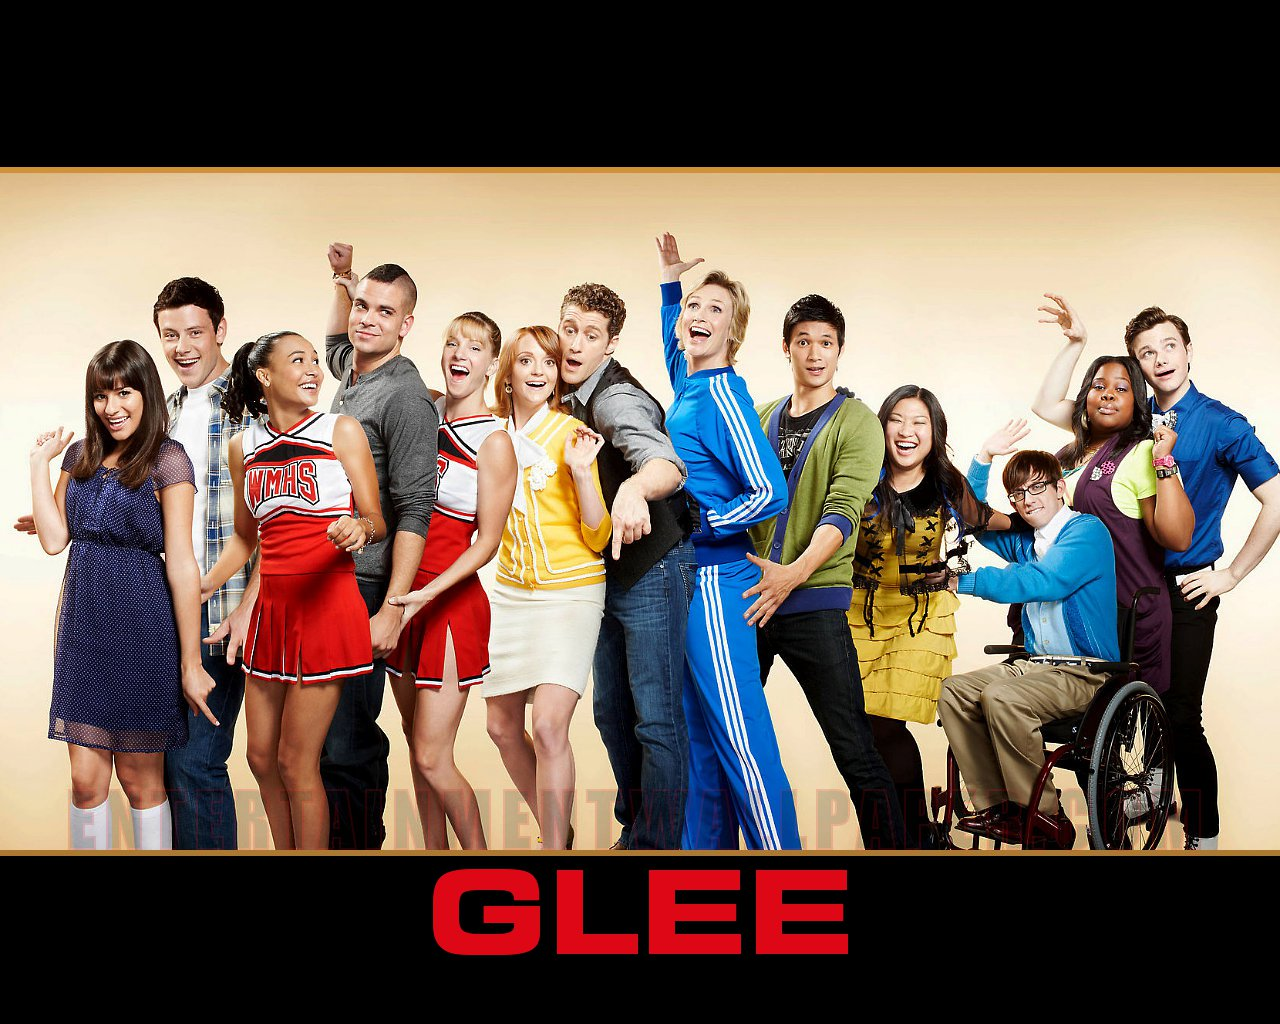 tv show glee wallpaper 20029860 size 1280x1024 more glee wallpaper 1280x1024